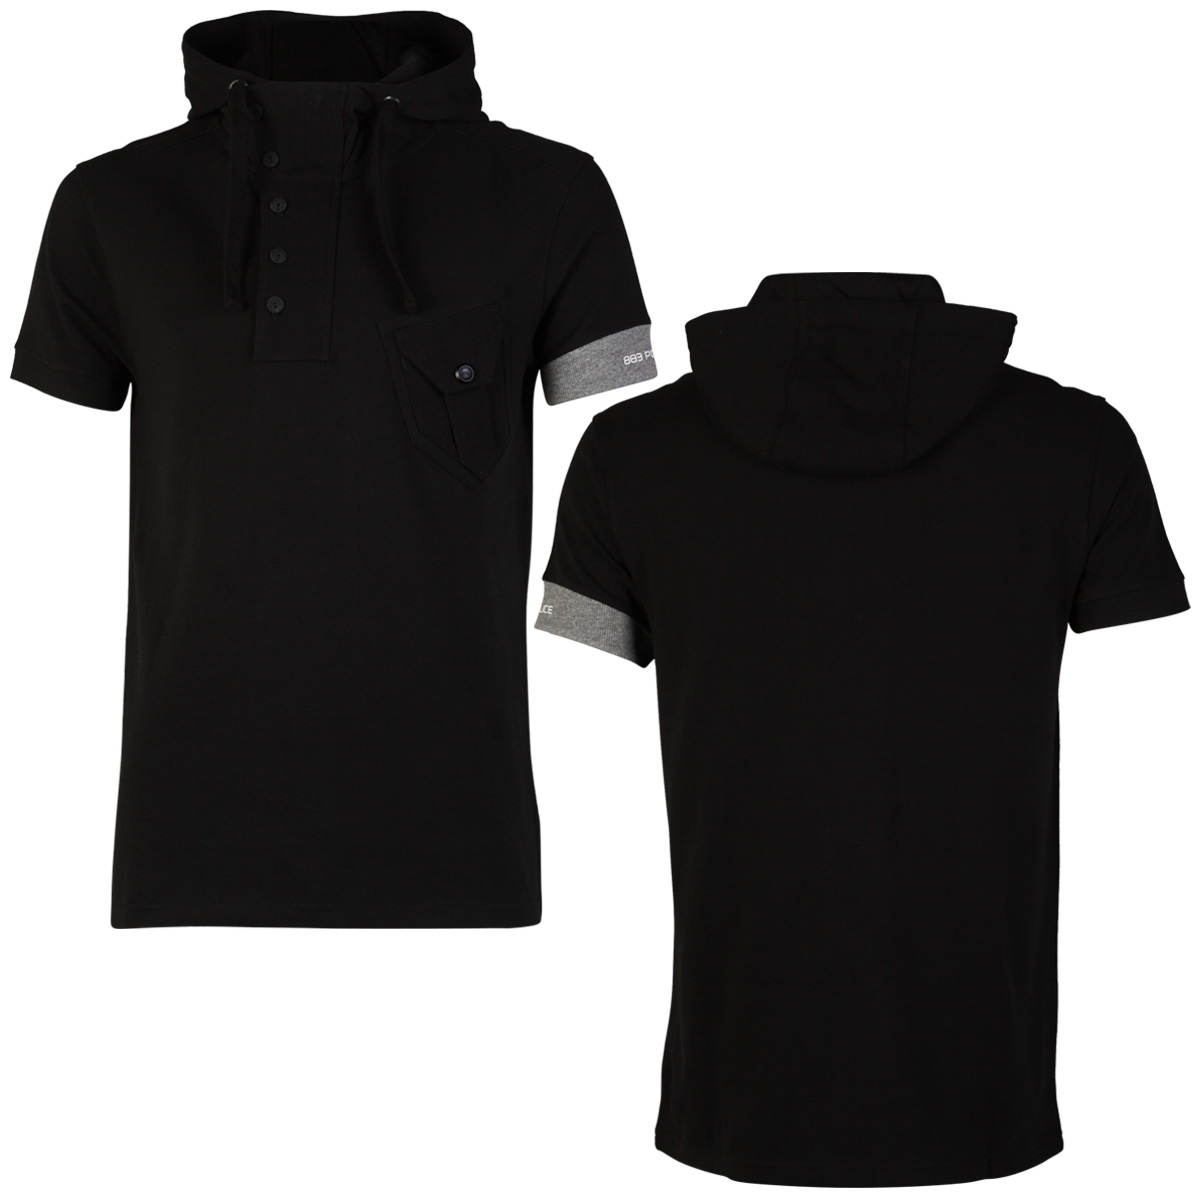 NEW MENS 883 POLICE HENDERSON BLACK HOODED BUTTON UP T-SHIRT TOP ...